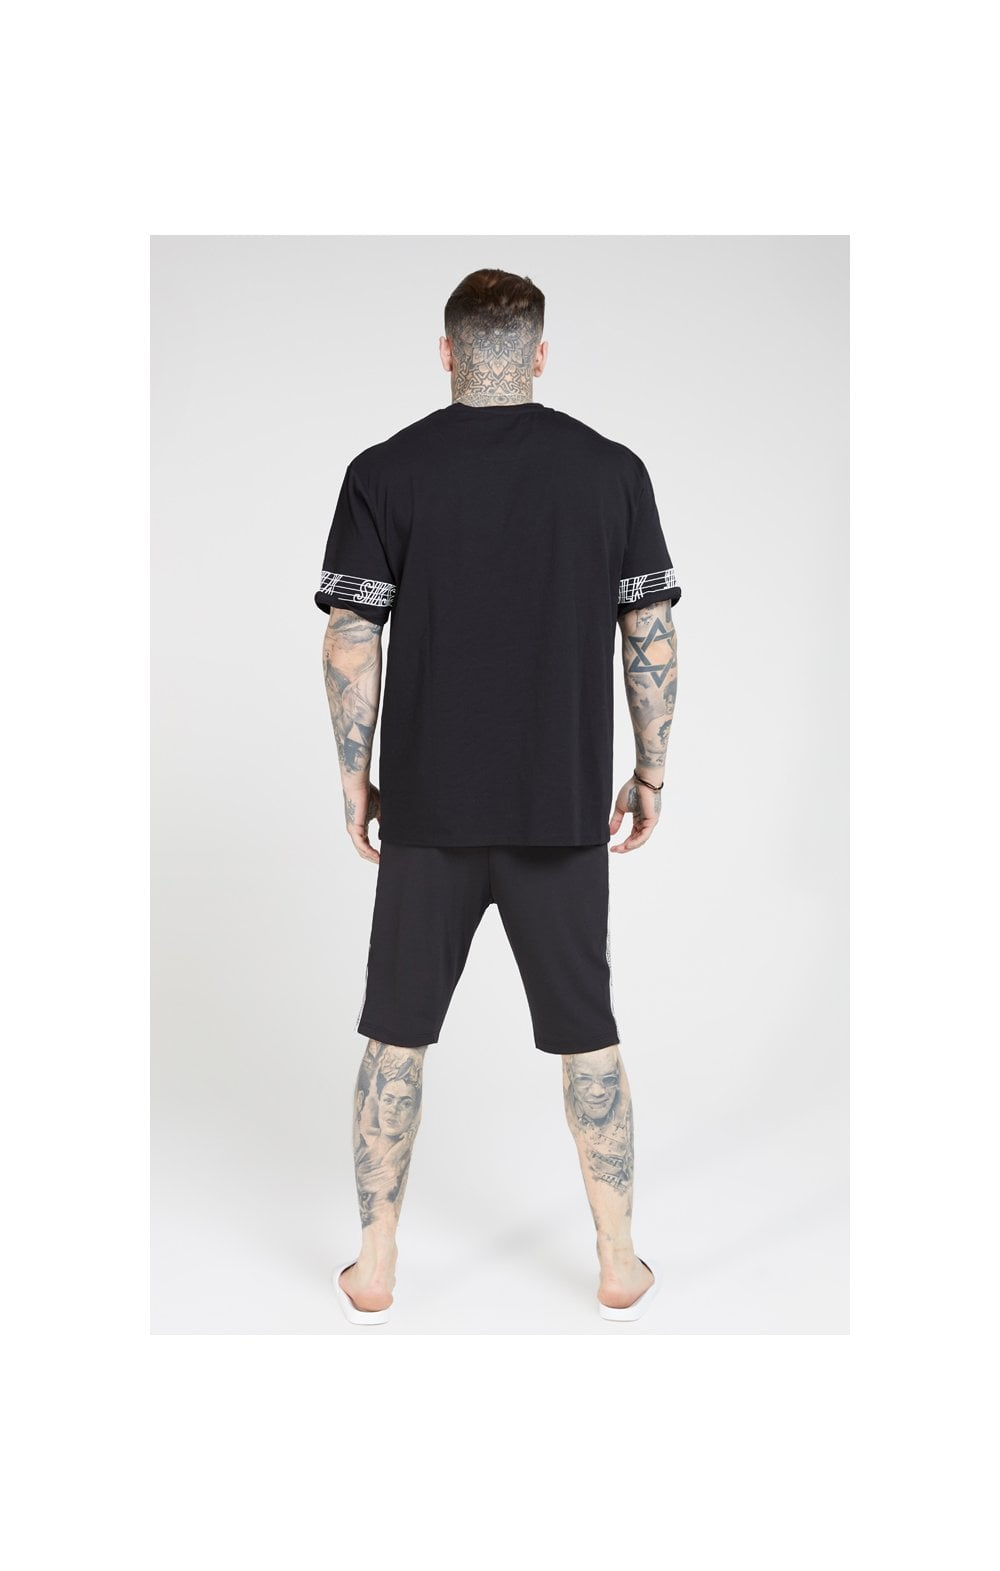 SikSilk S/S Essential Runner Oversized Tee – Black (6)